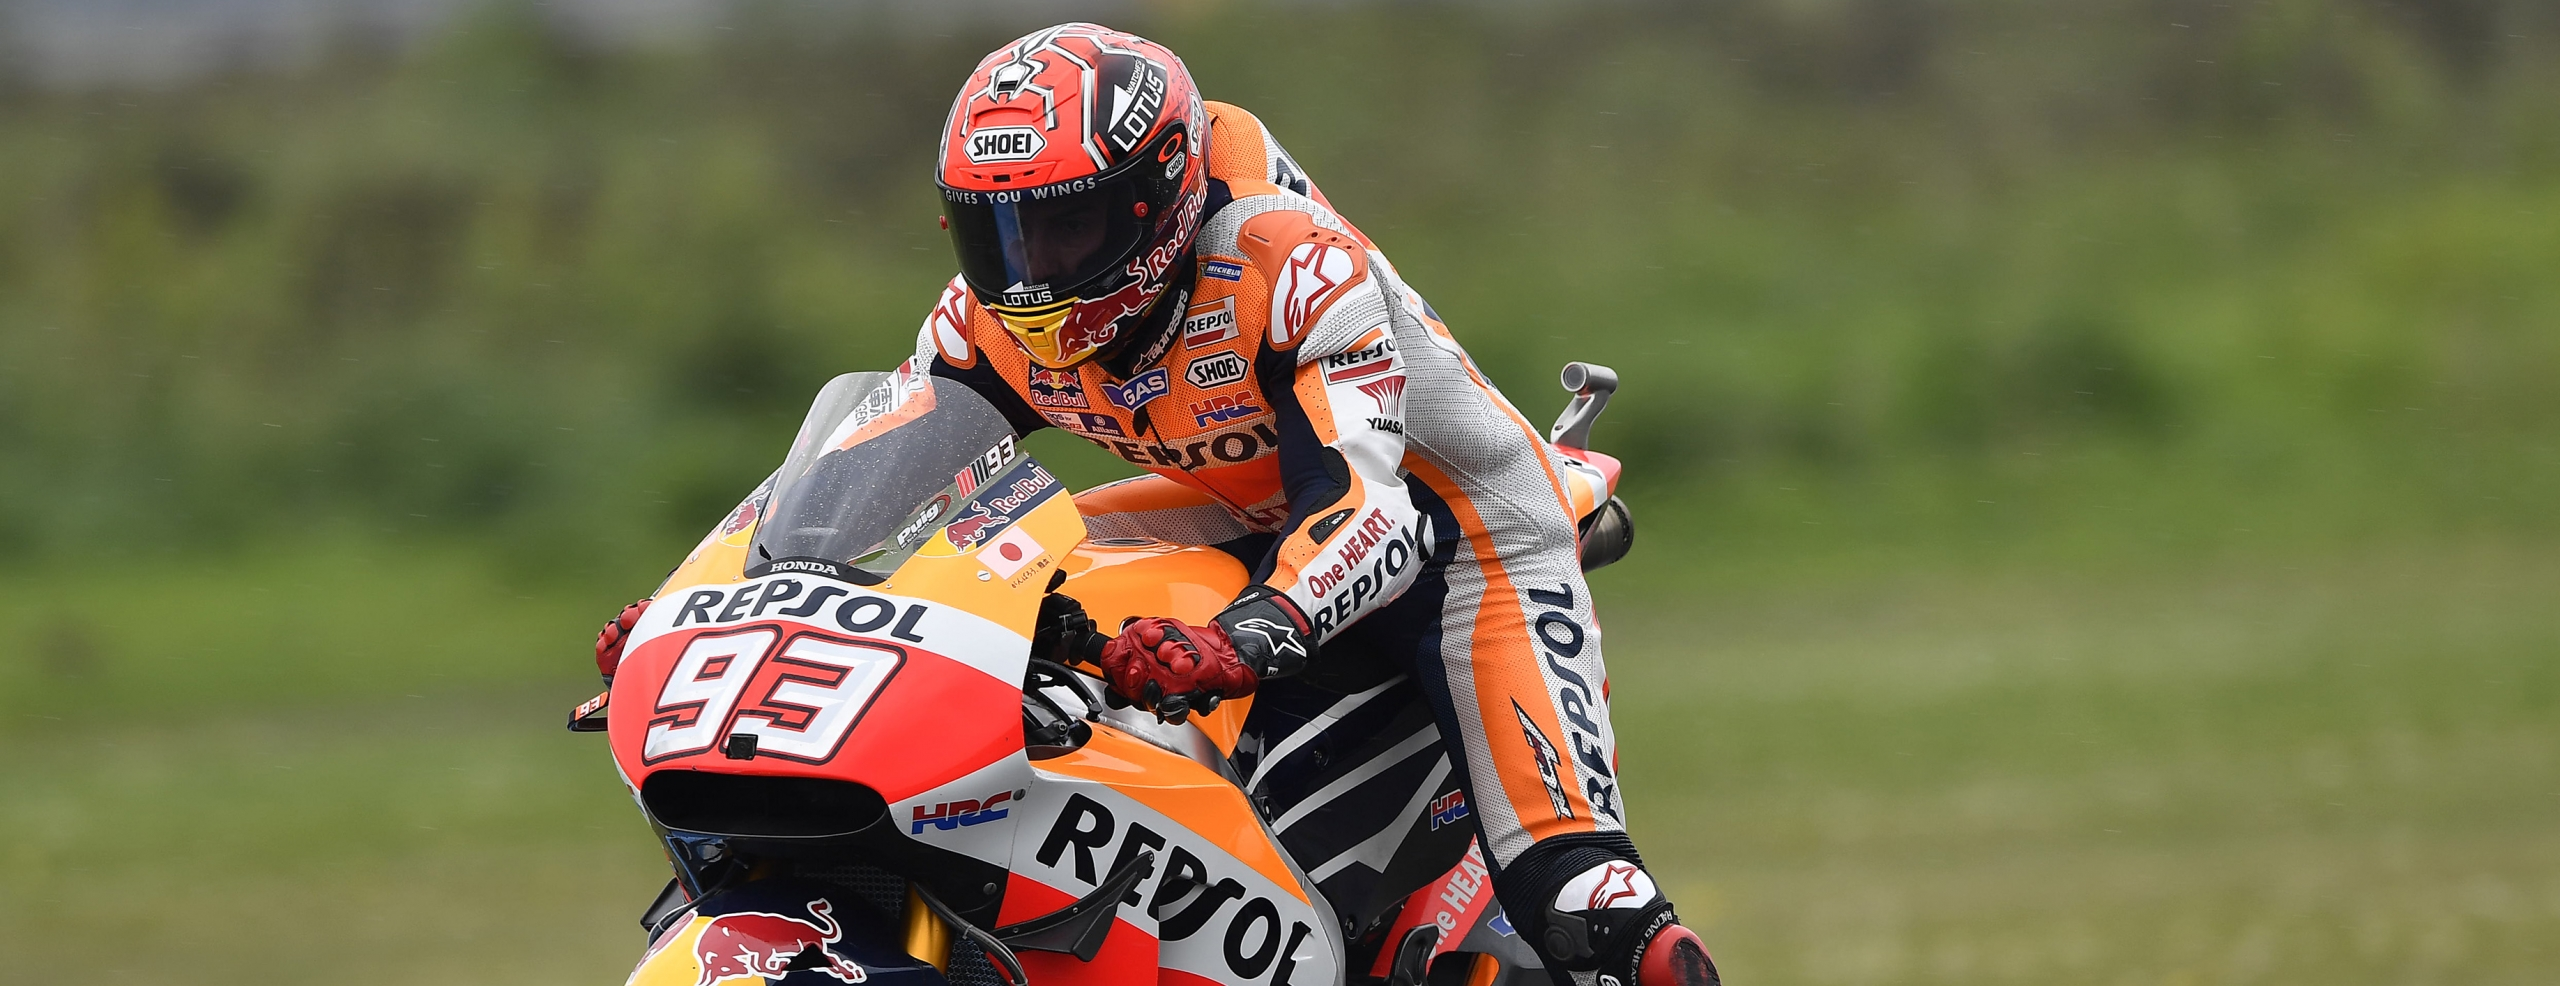 Challenging qualifying for Repsol Honda Team at Assen